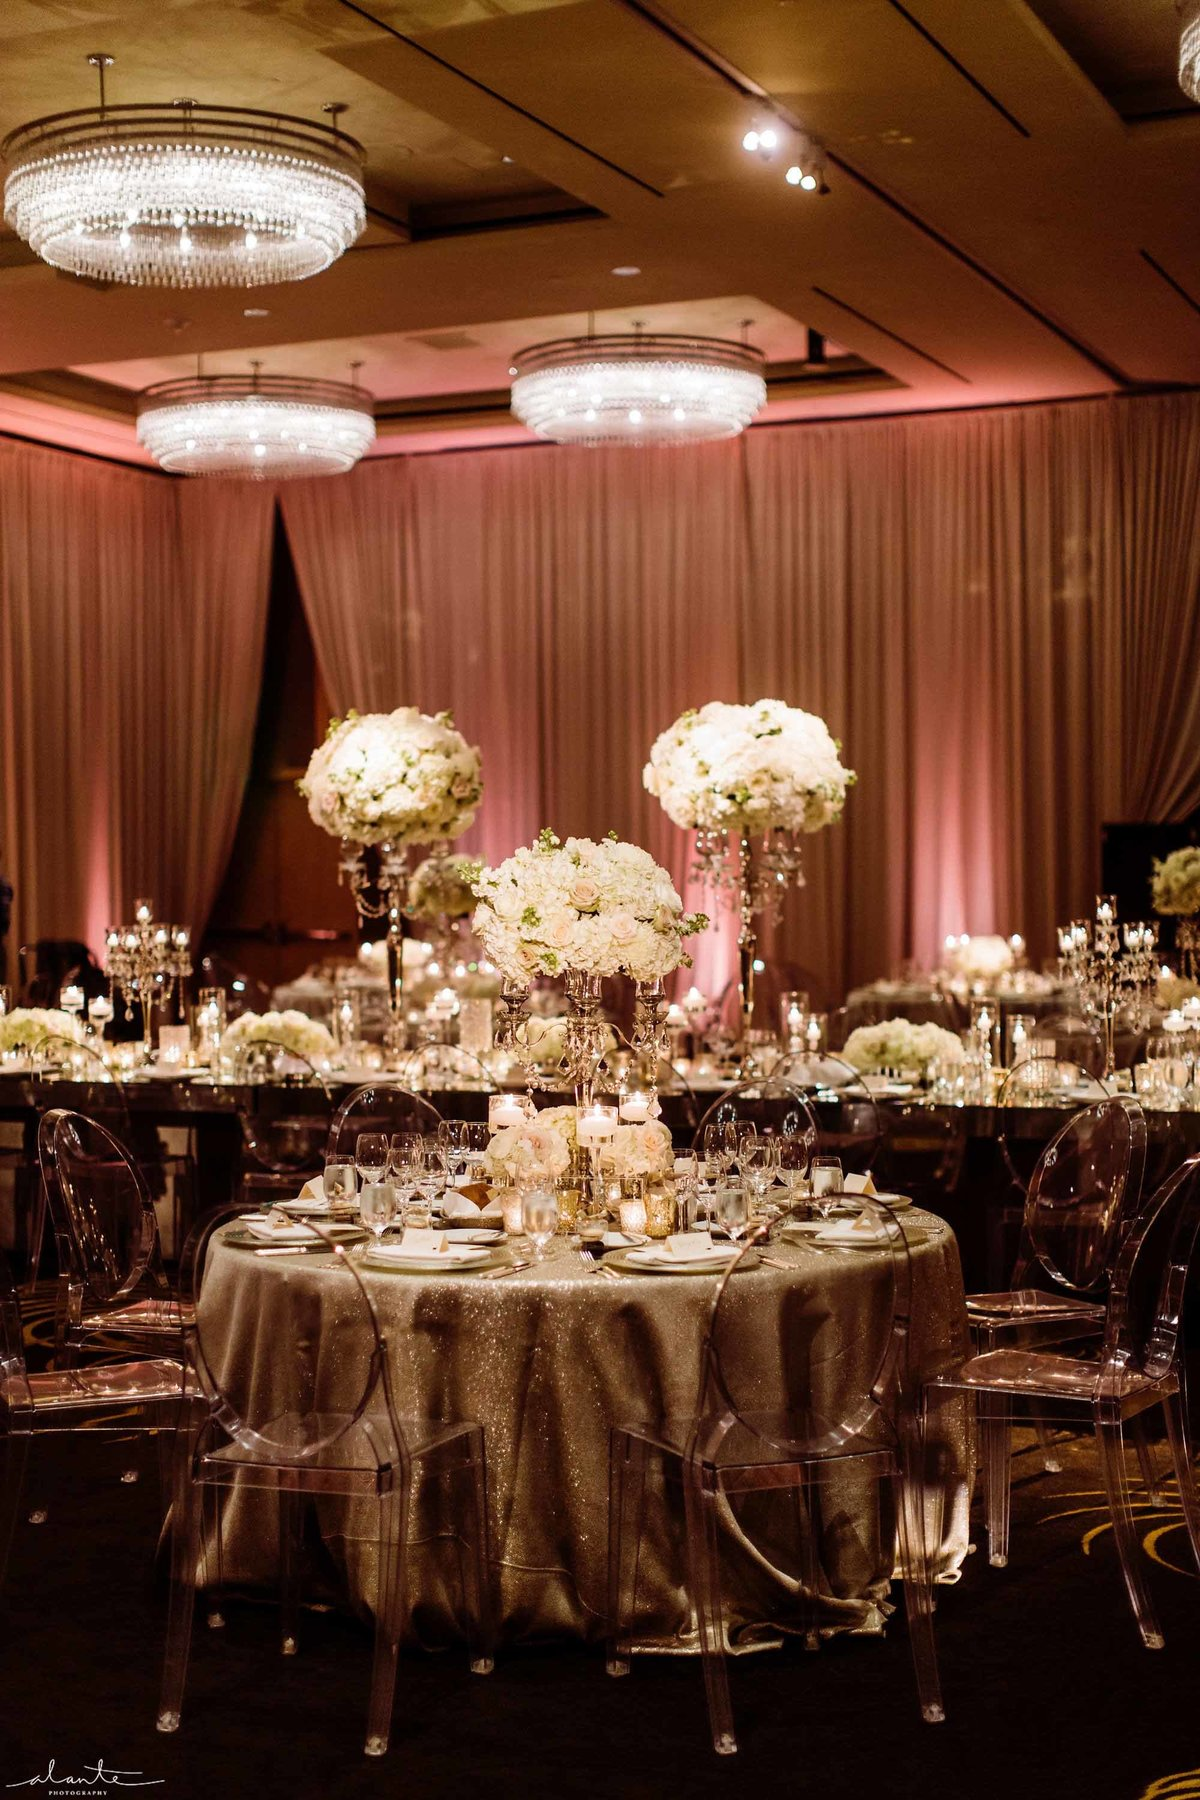 Elegant glamorous ballroom wedding designed by Flora Nova Design.